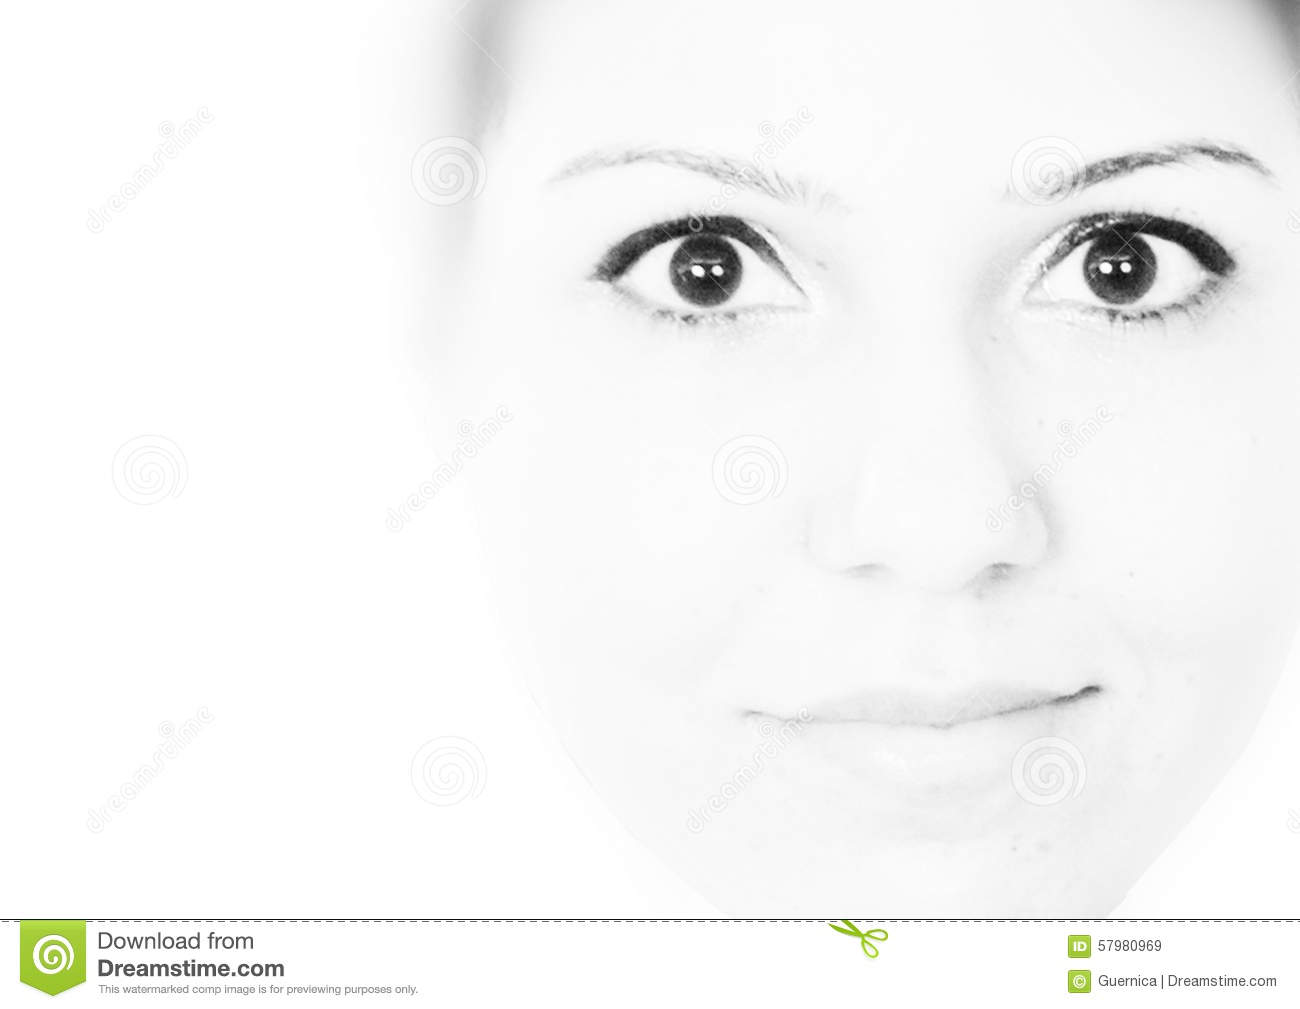 High key black and white portrait of a girl wearing eyeliner